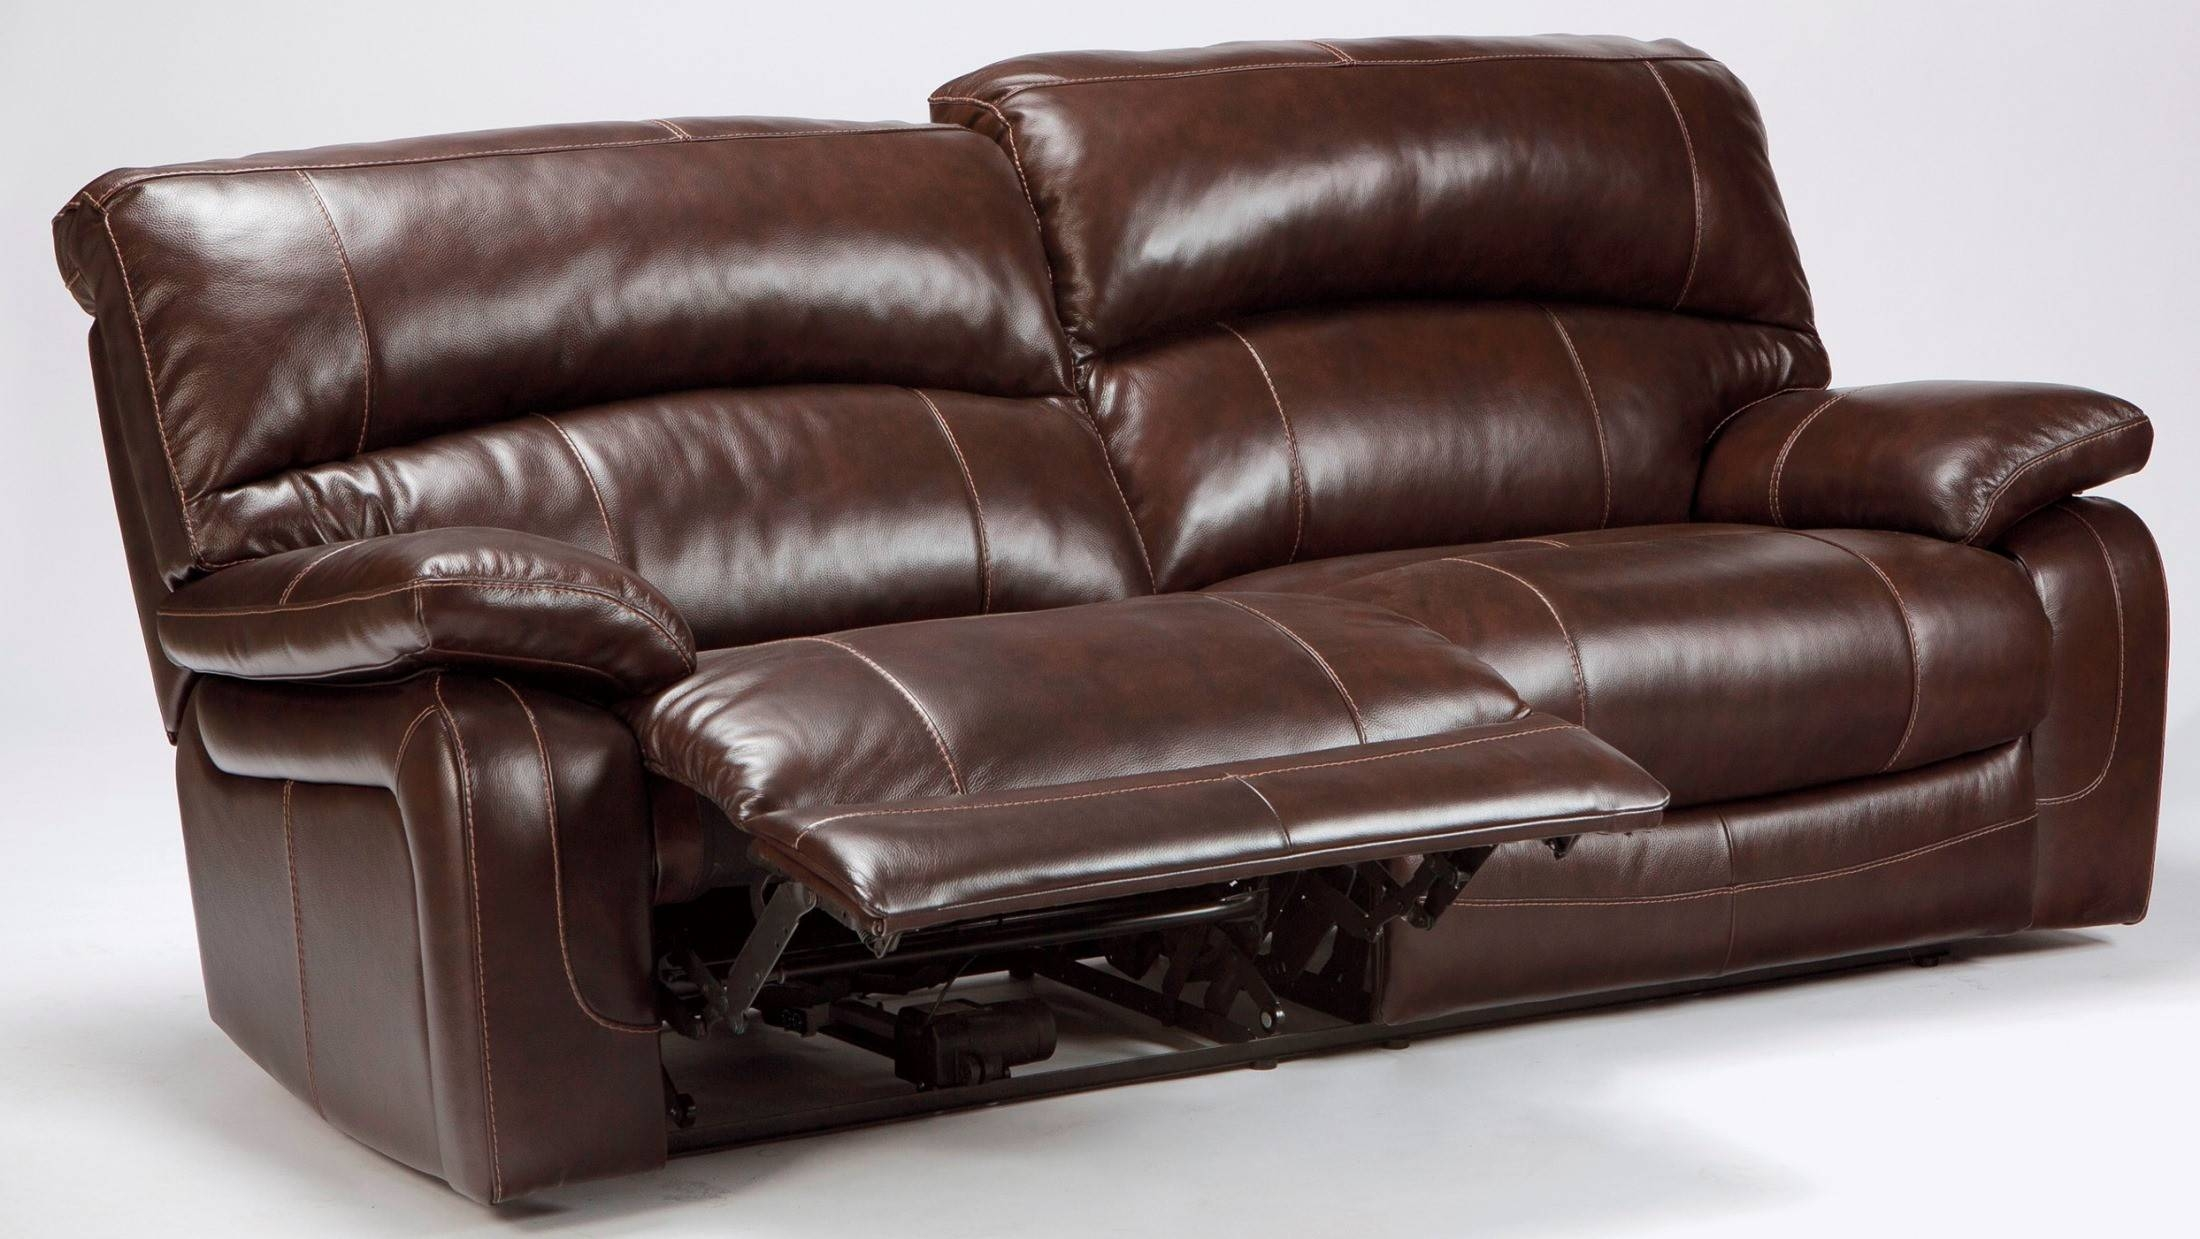 Black Leather 2 Seater Recliner Sofa | Haven Reclining Sofa Cm6554 ...